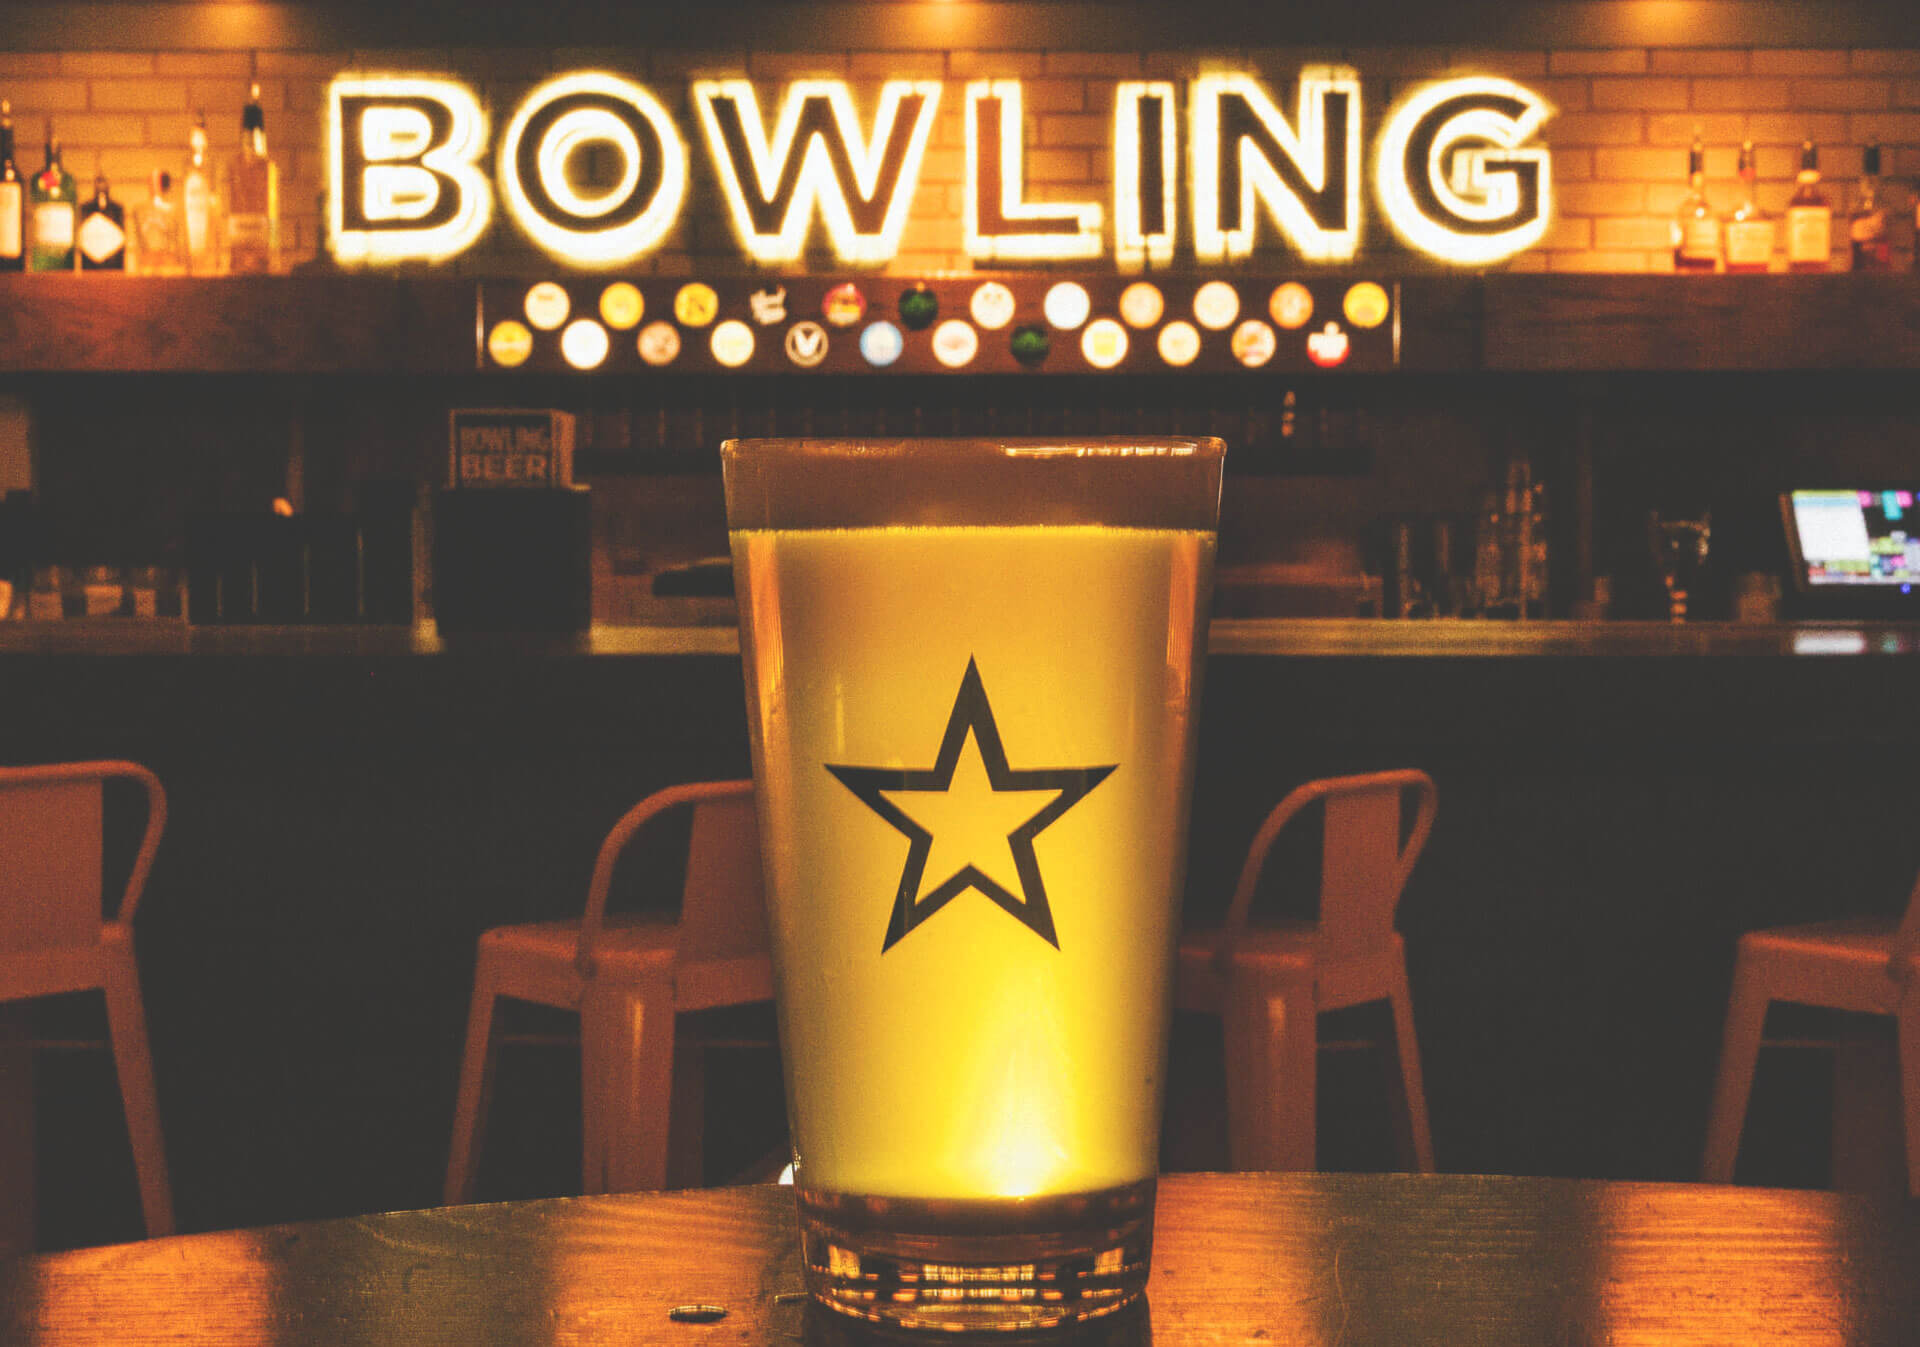 National beer at bowling alley